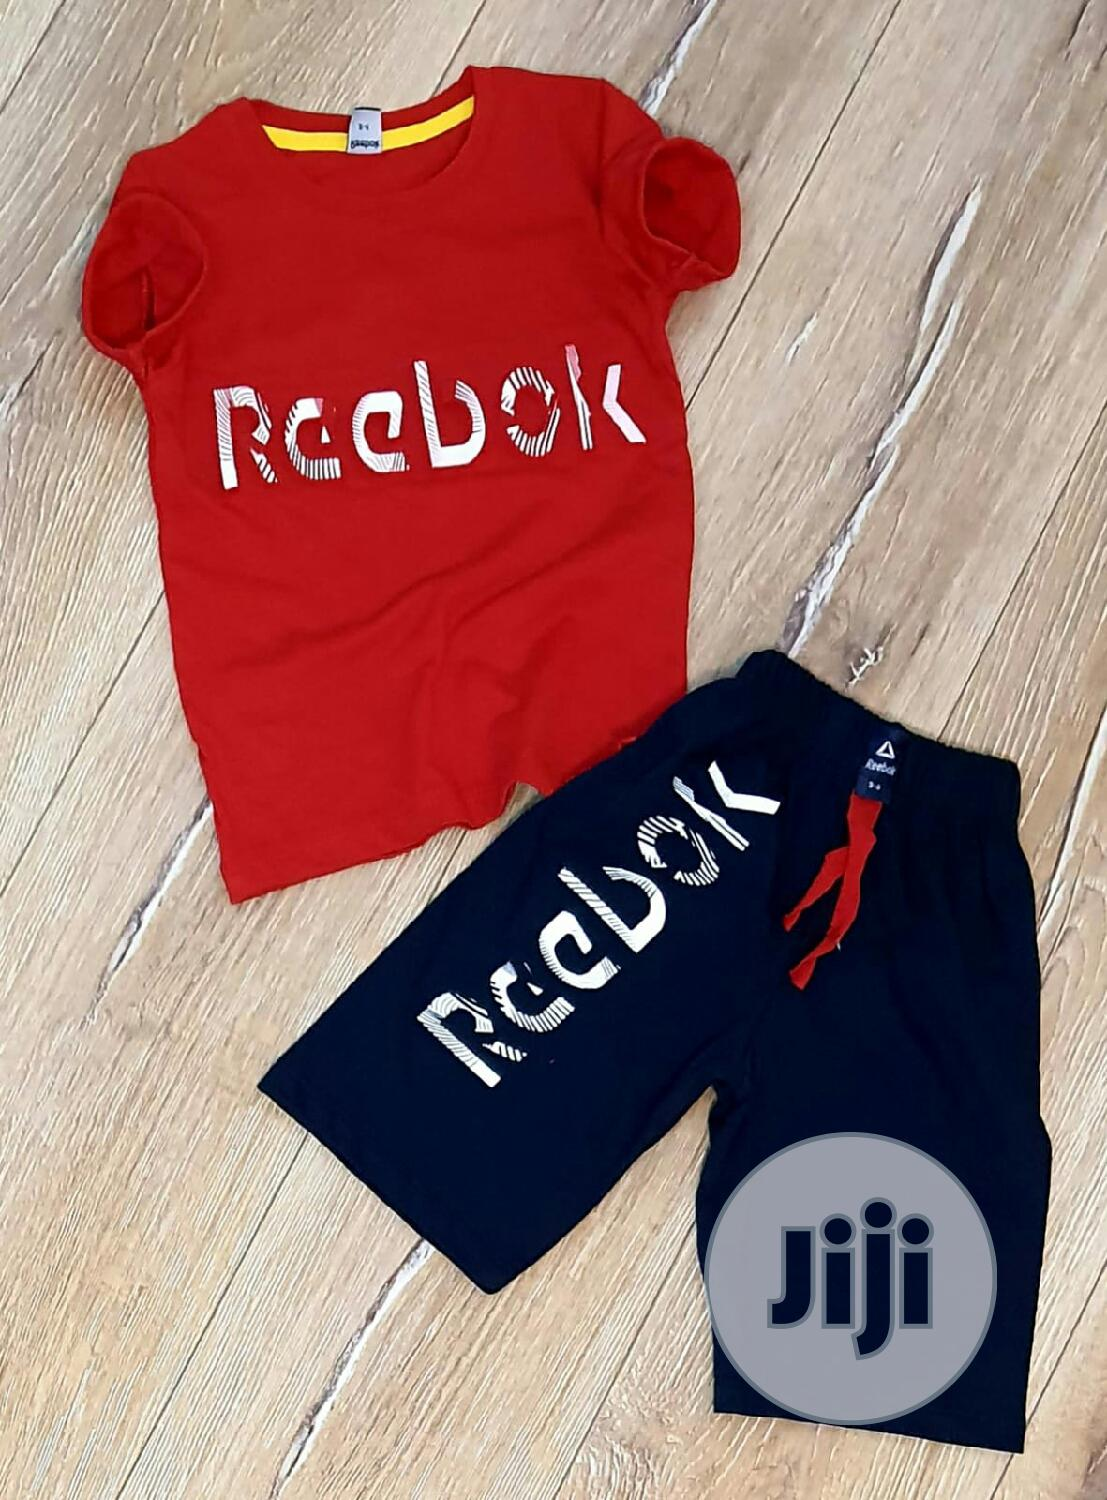 Branded Tshirts Knickers 6 to 24months